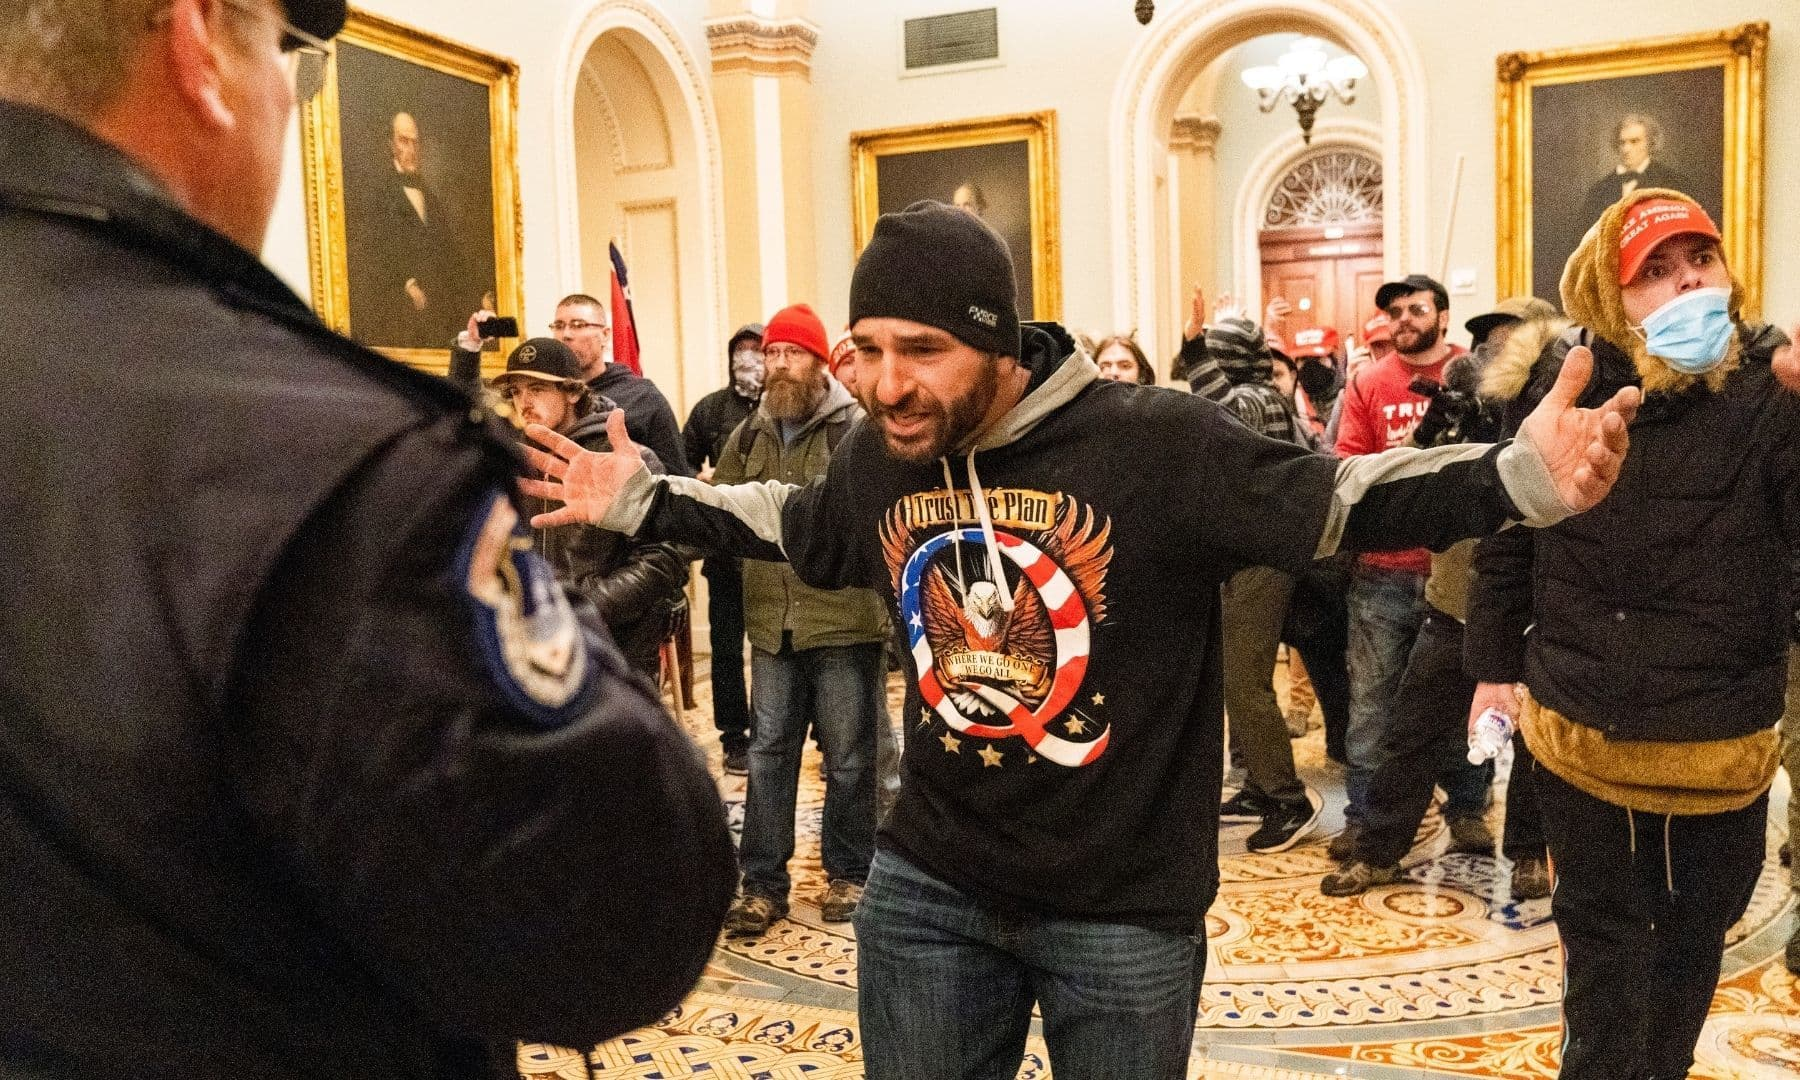 Supporters of President Donald Trump are confronted by Capitol Police officers outside the Senate Chamber at the Capitol. — AP